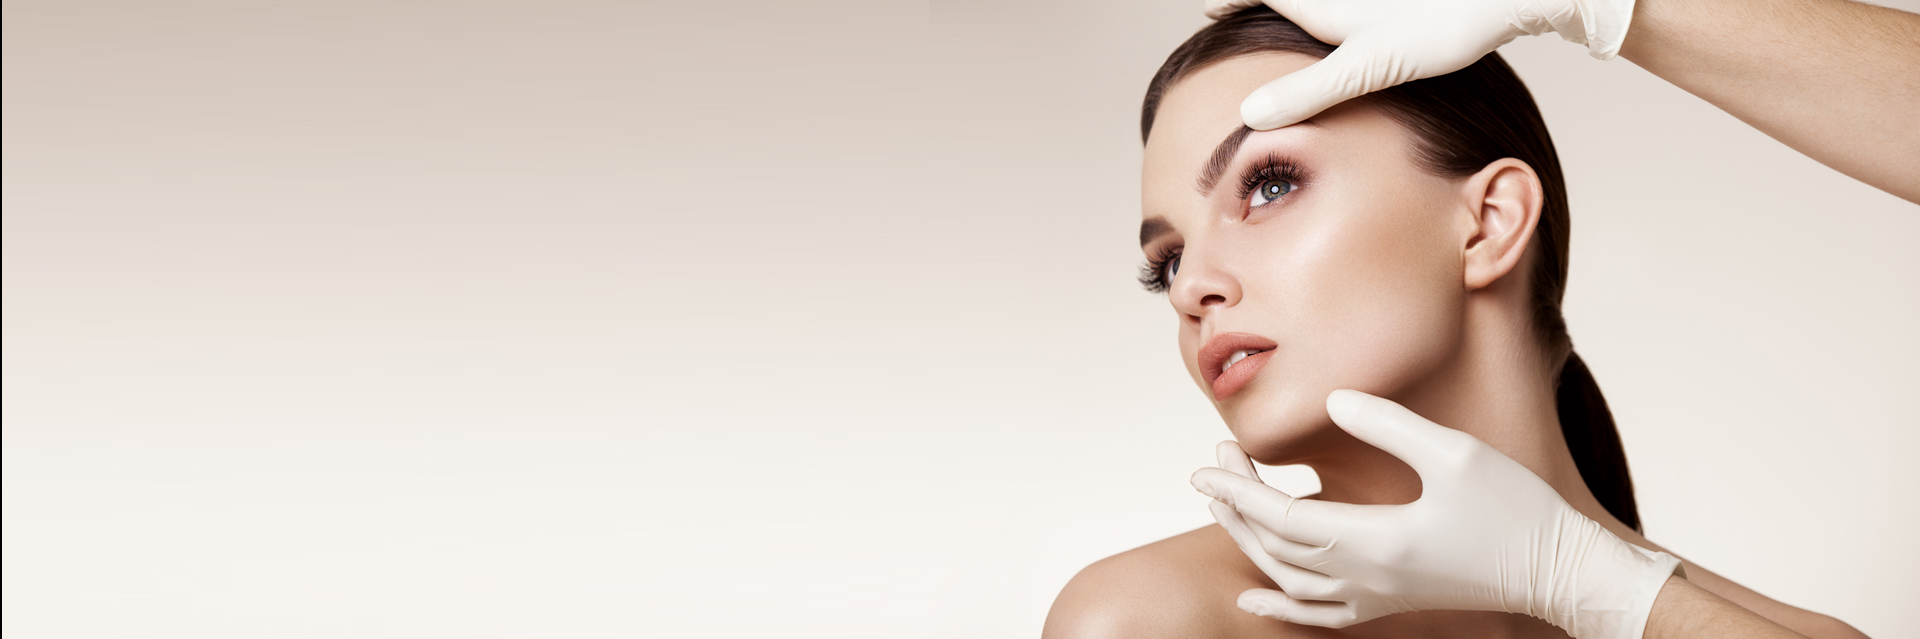 Best Plastic Surgery Treatment Delhi